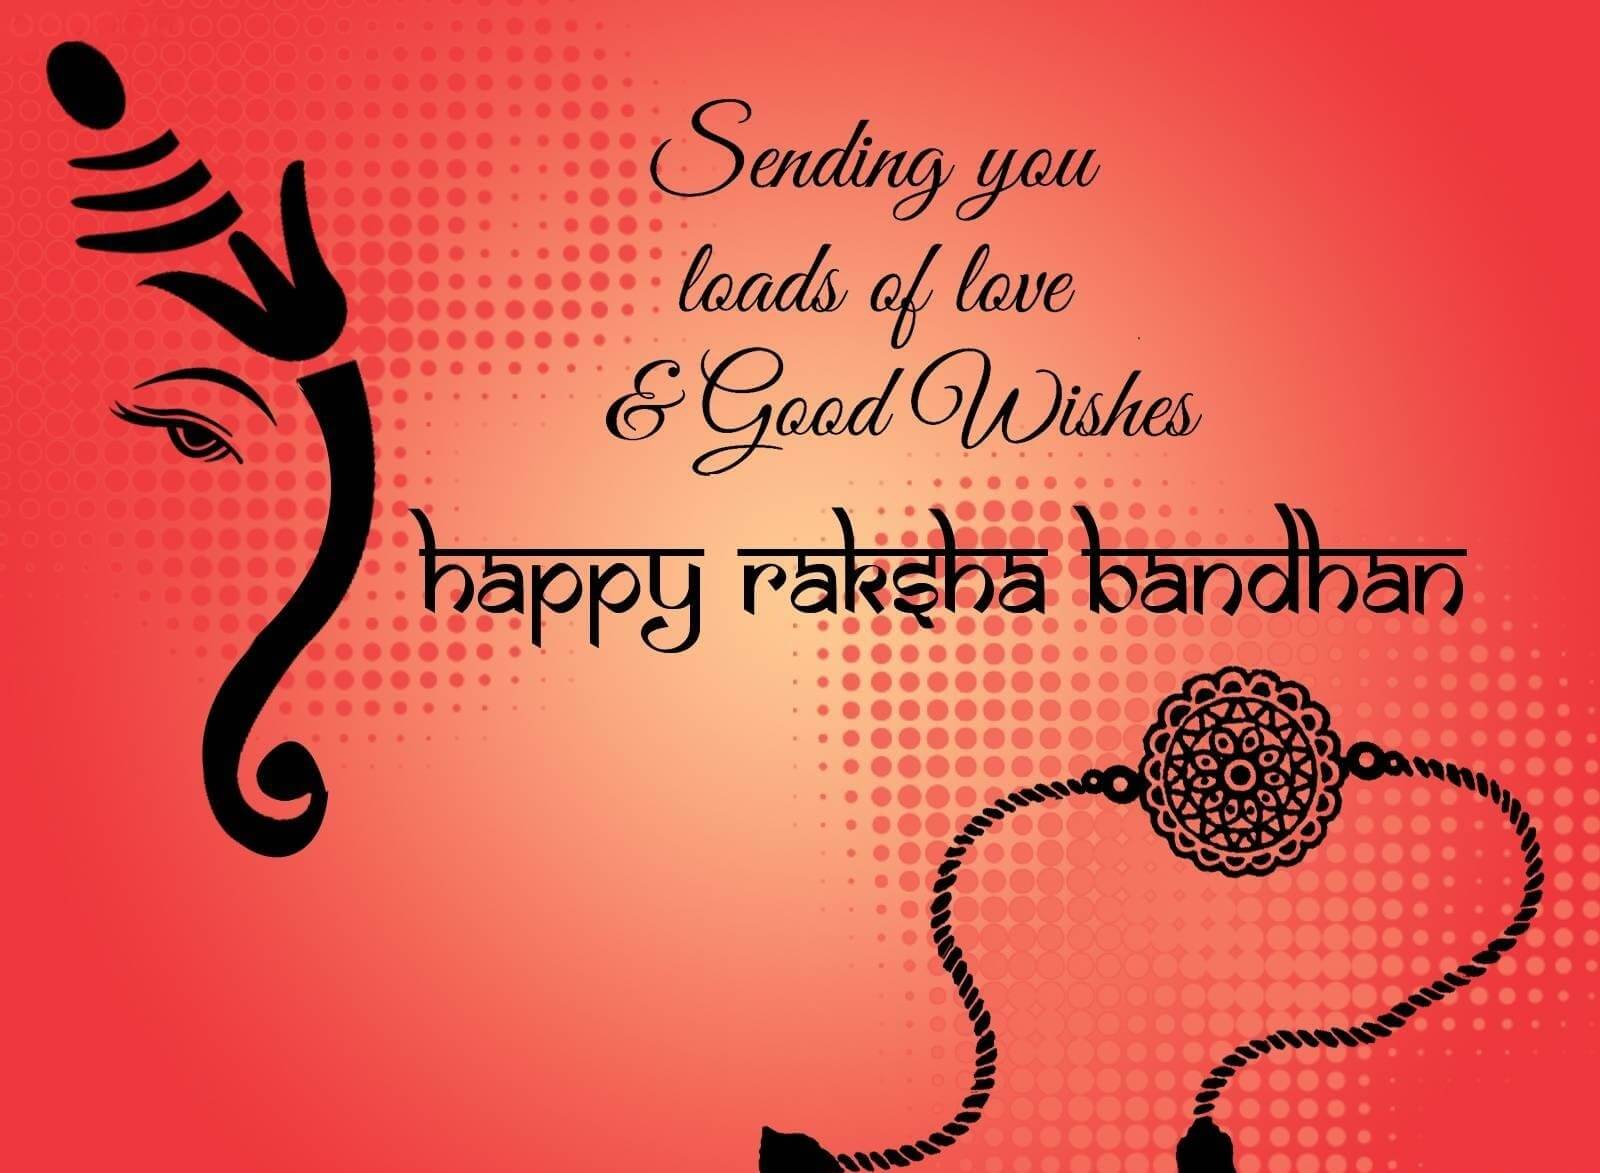 happy Rakhi wishes wallpapers images hd download